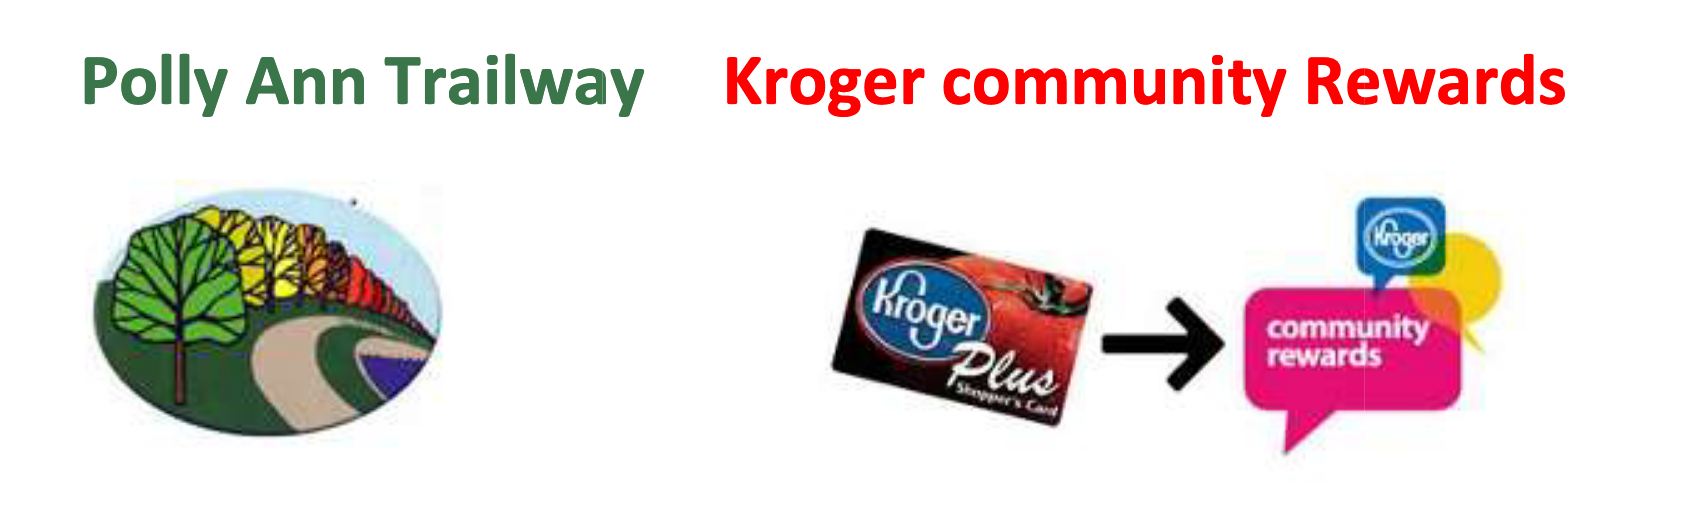 patkrogerrewards